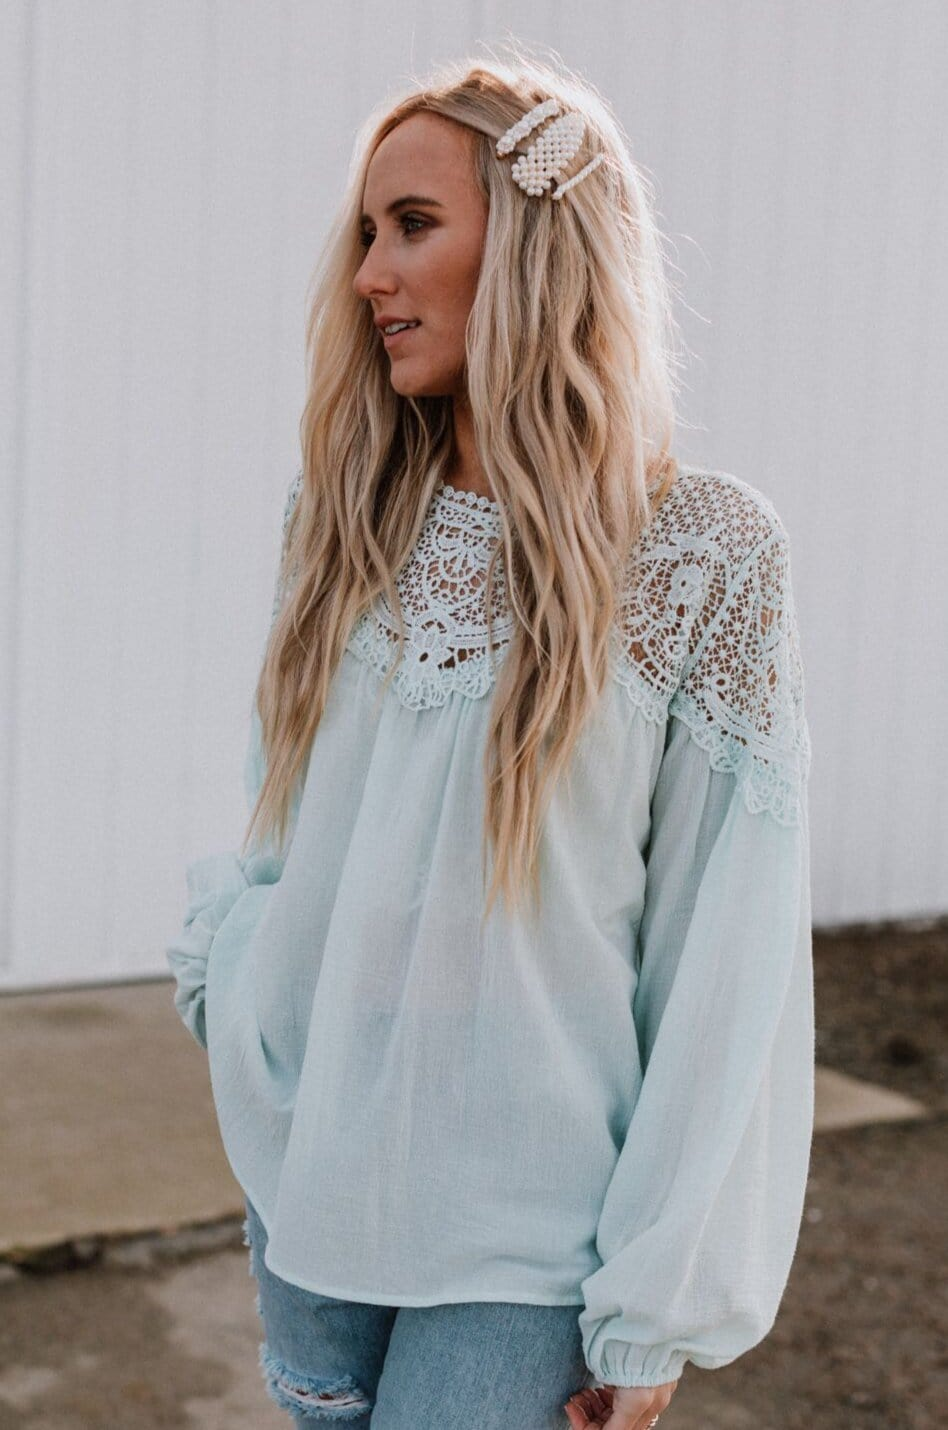 Image of Daydreaming Crochet Top